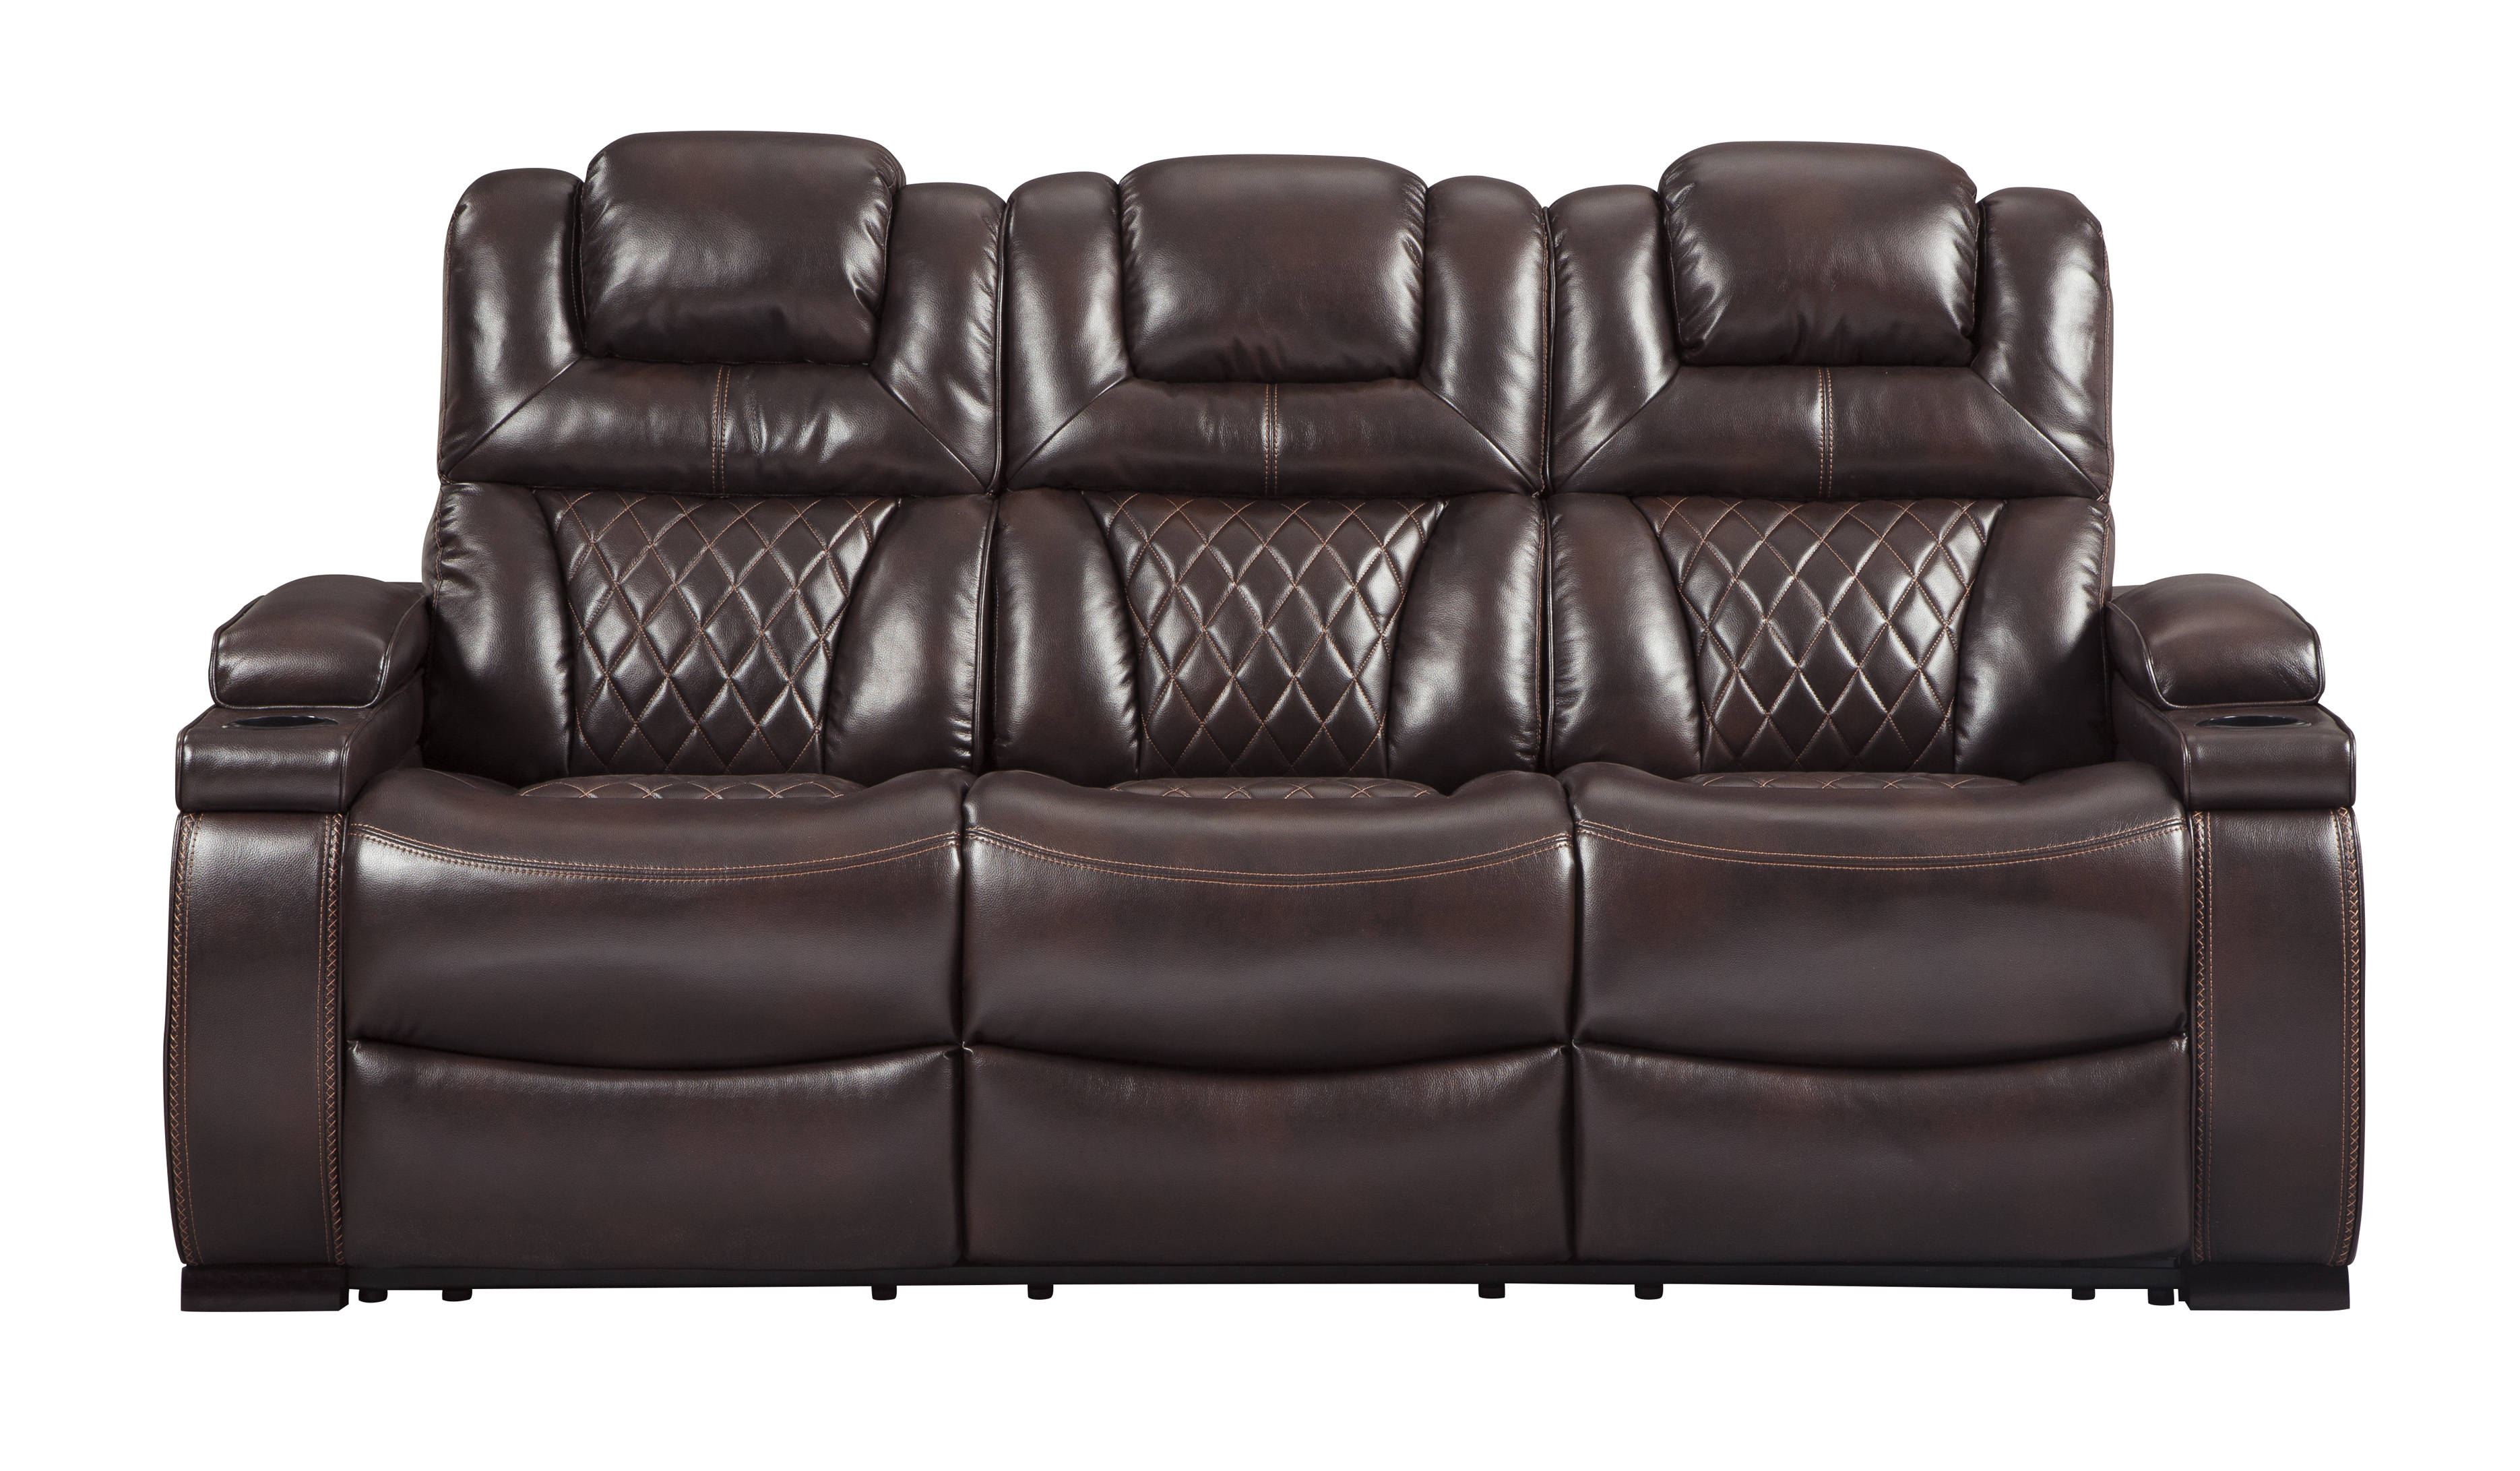 Wondrous Ashley Furniture Warnerton Chocolate Power Reclining Sofa Home Interior And Landscaping Mentranervesignezvosmurscom